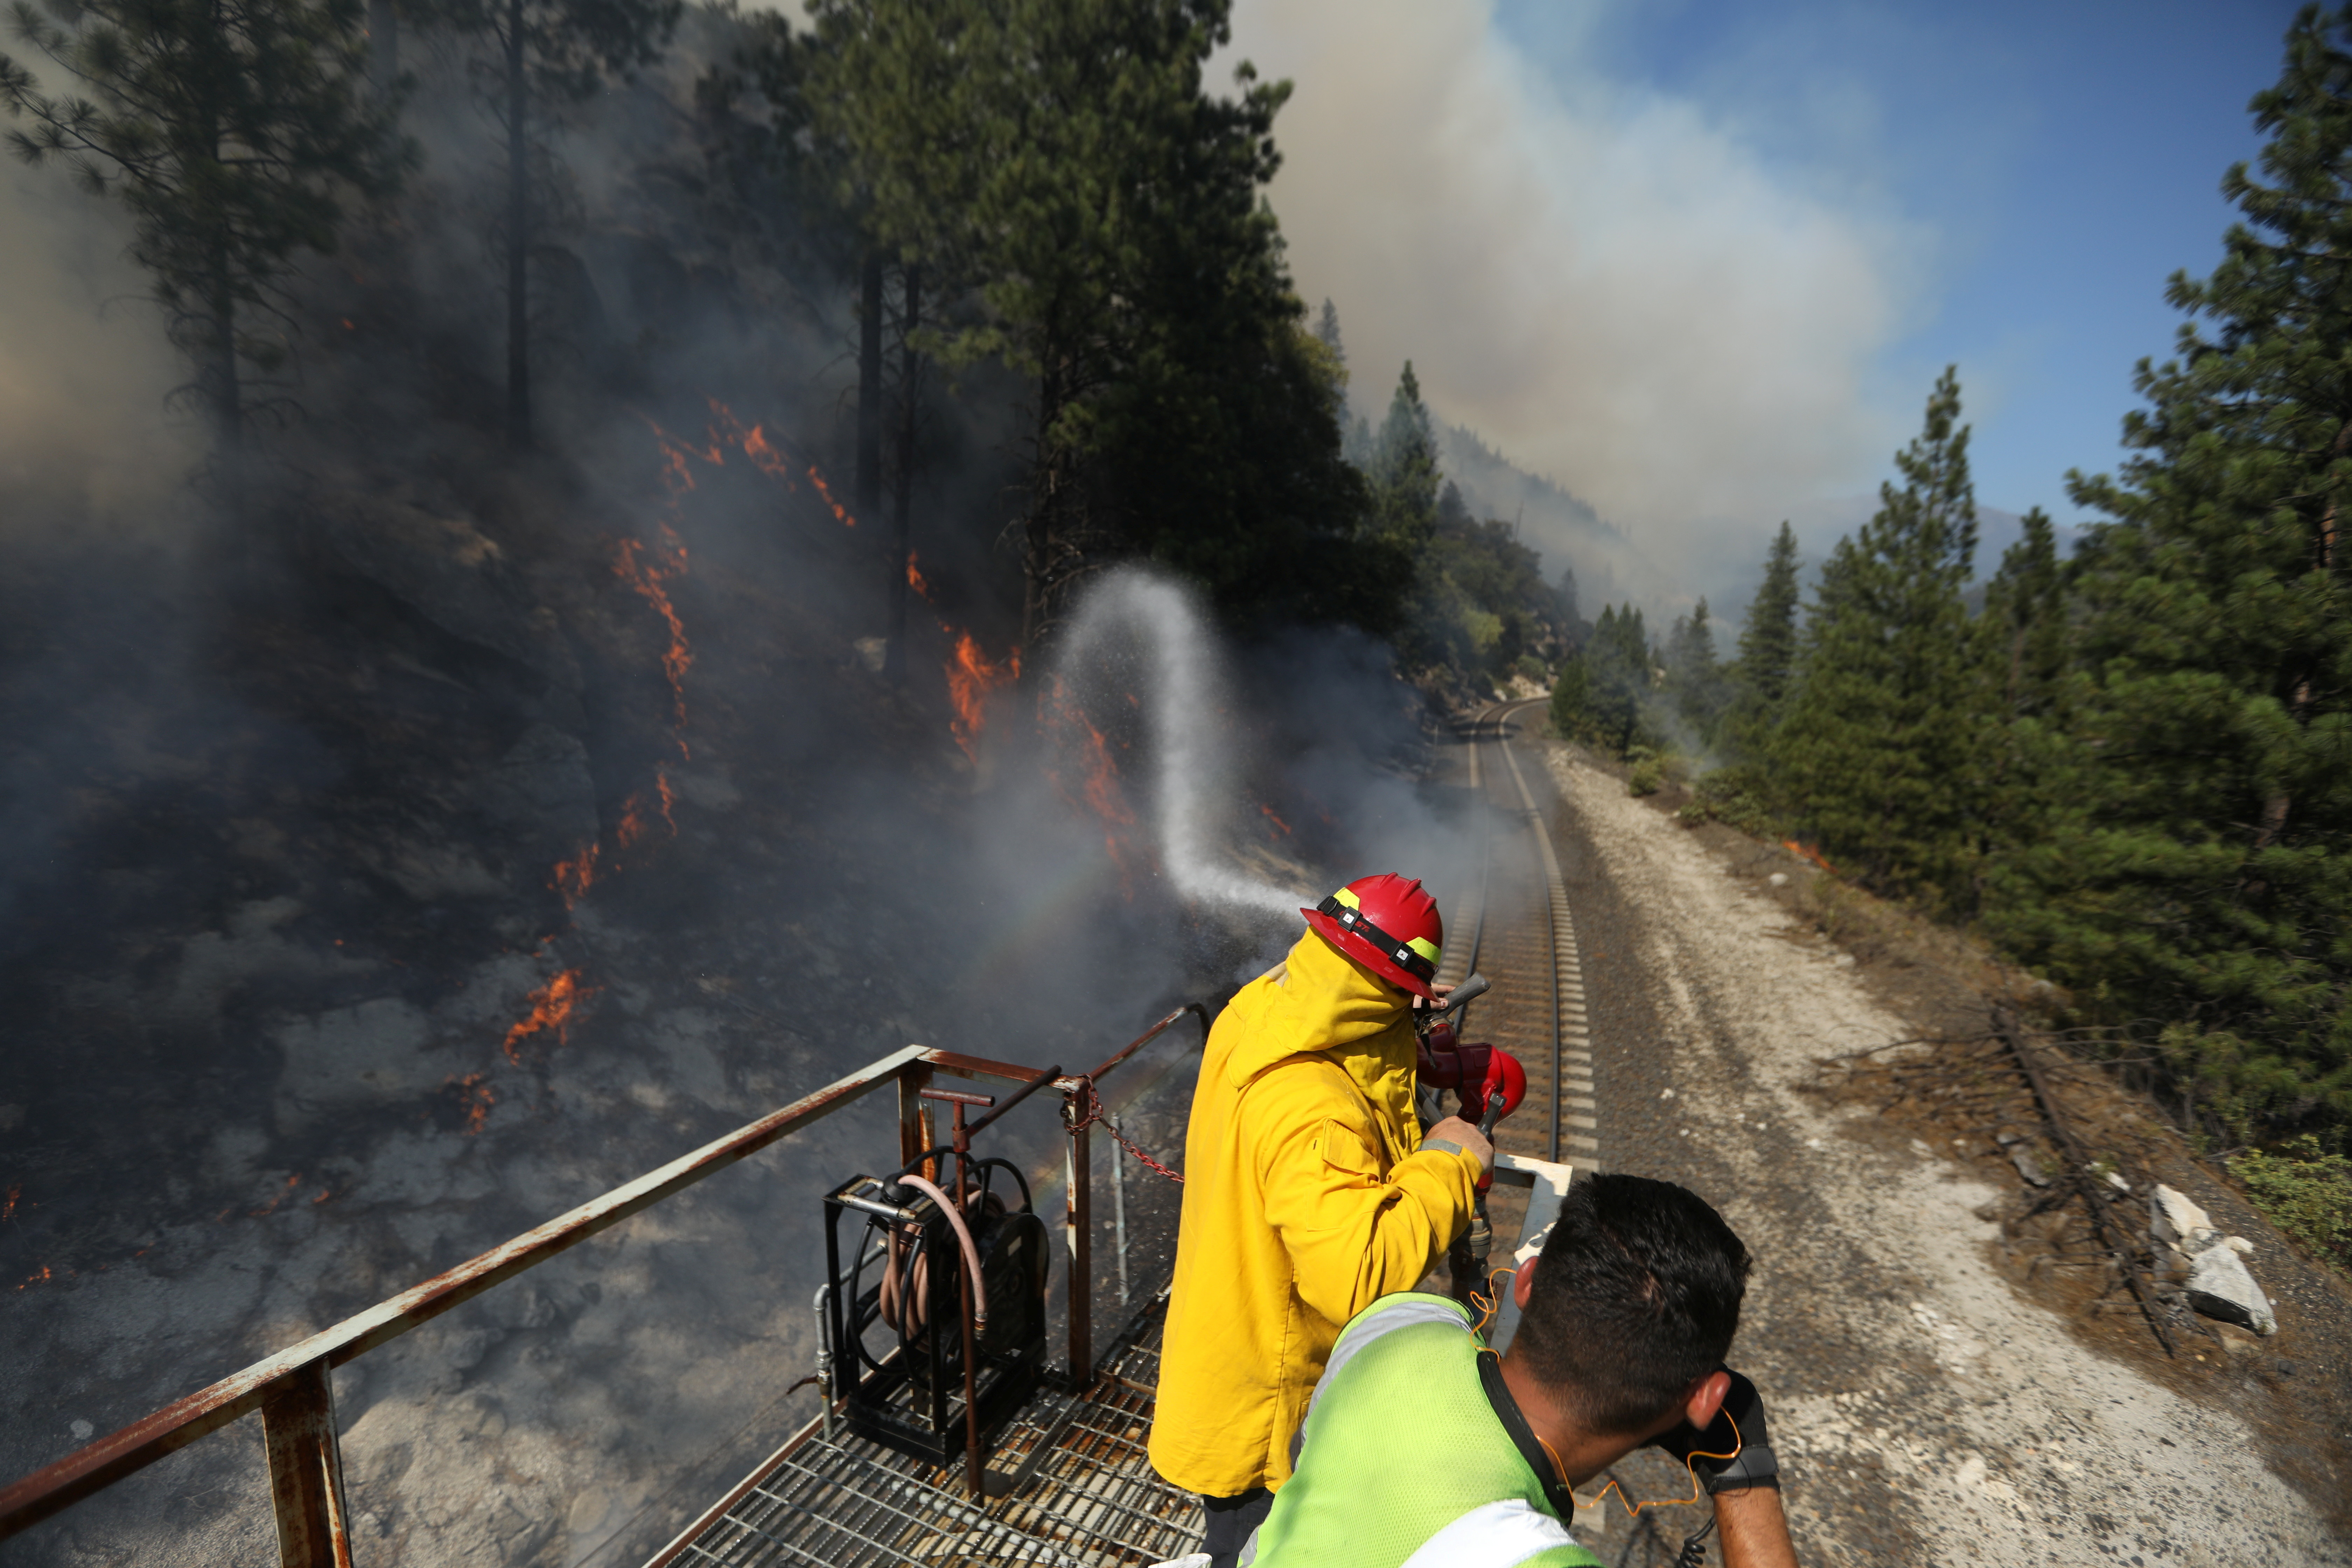 Firefighters assigned to the Union Pacific Fire Train protect the tracks and hinder the Dixie Fire from crossing the North Fork of the Feather River in Plumas National Forest, California, U.S.